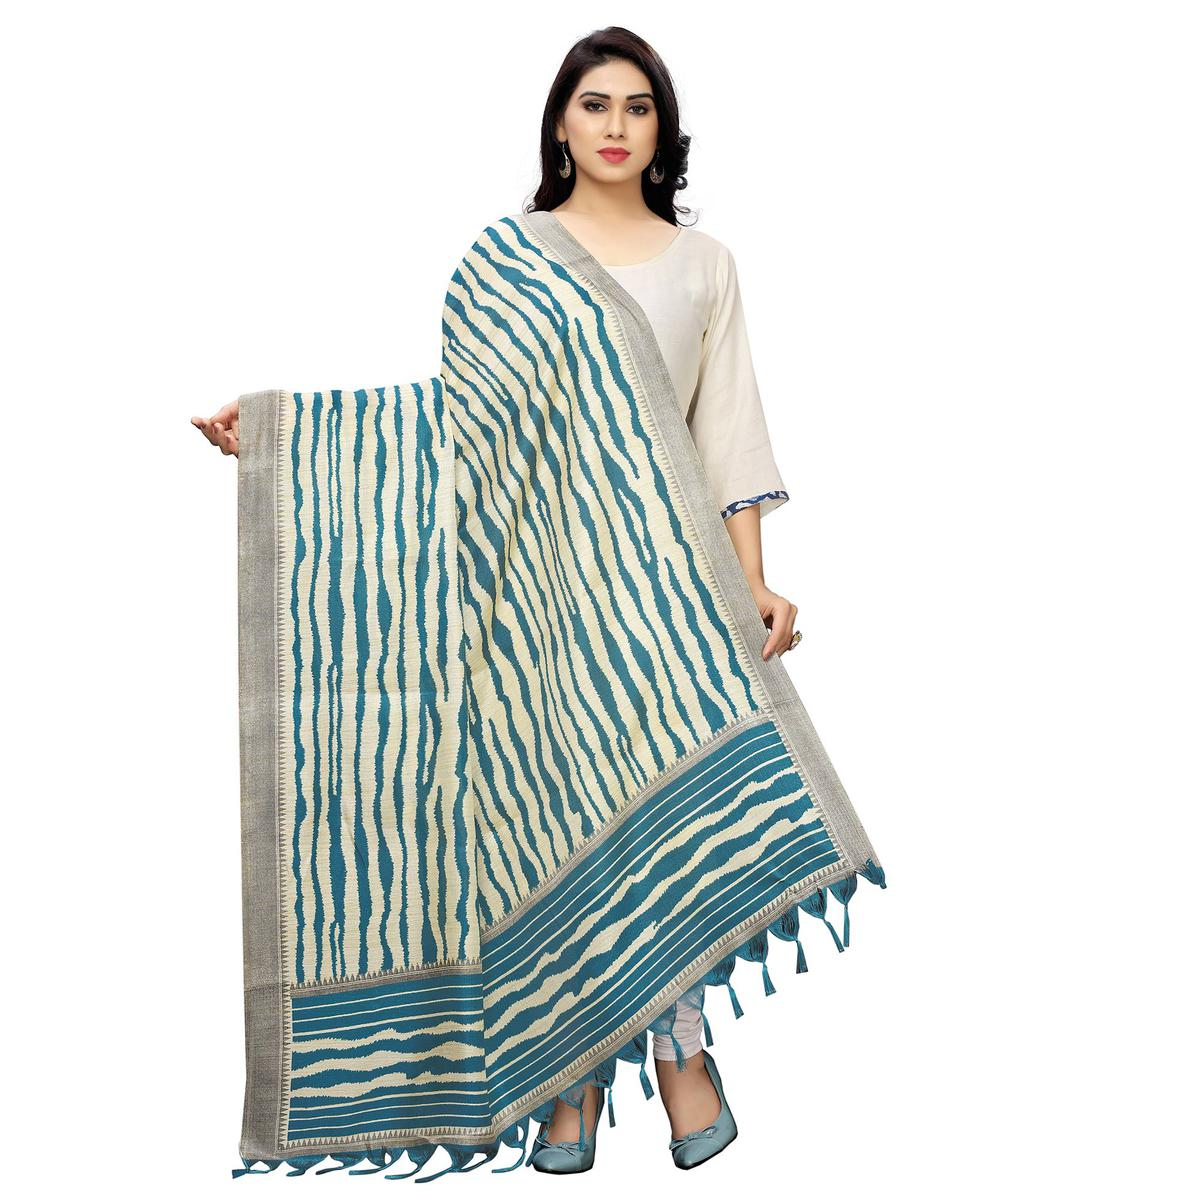 Gorgeous Rama Blue Colored Festive Wear Printed Cotton Dupatta With Tassels